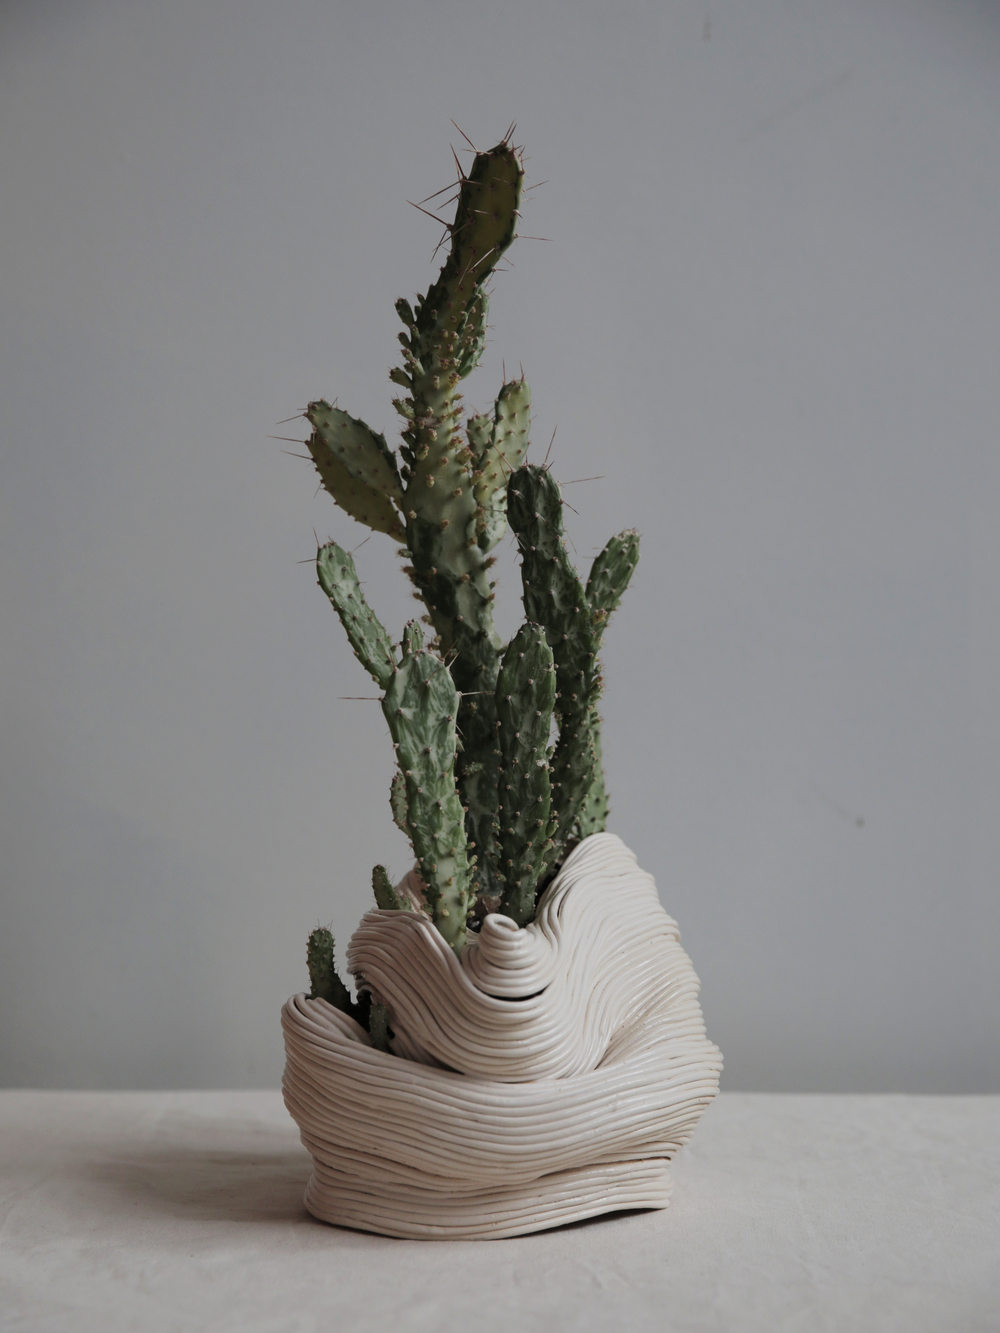 Seated vessel leaning forward,  2016.  Ceramic with Opuntia Monacantha variegata